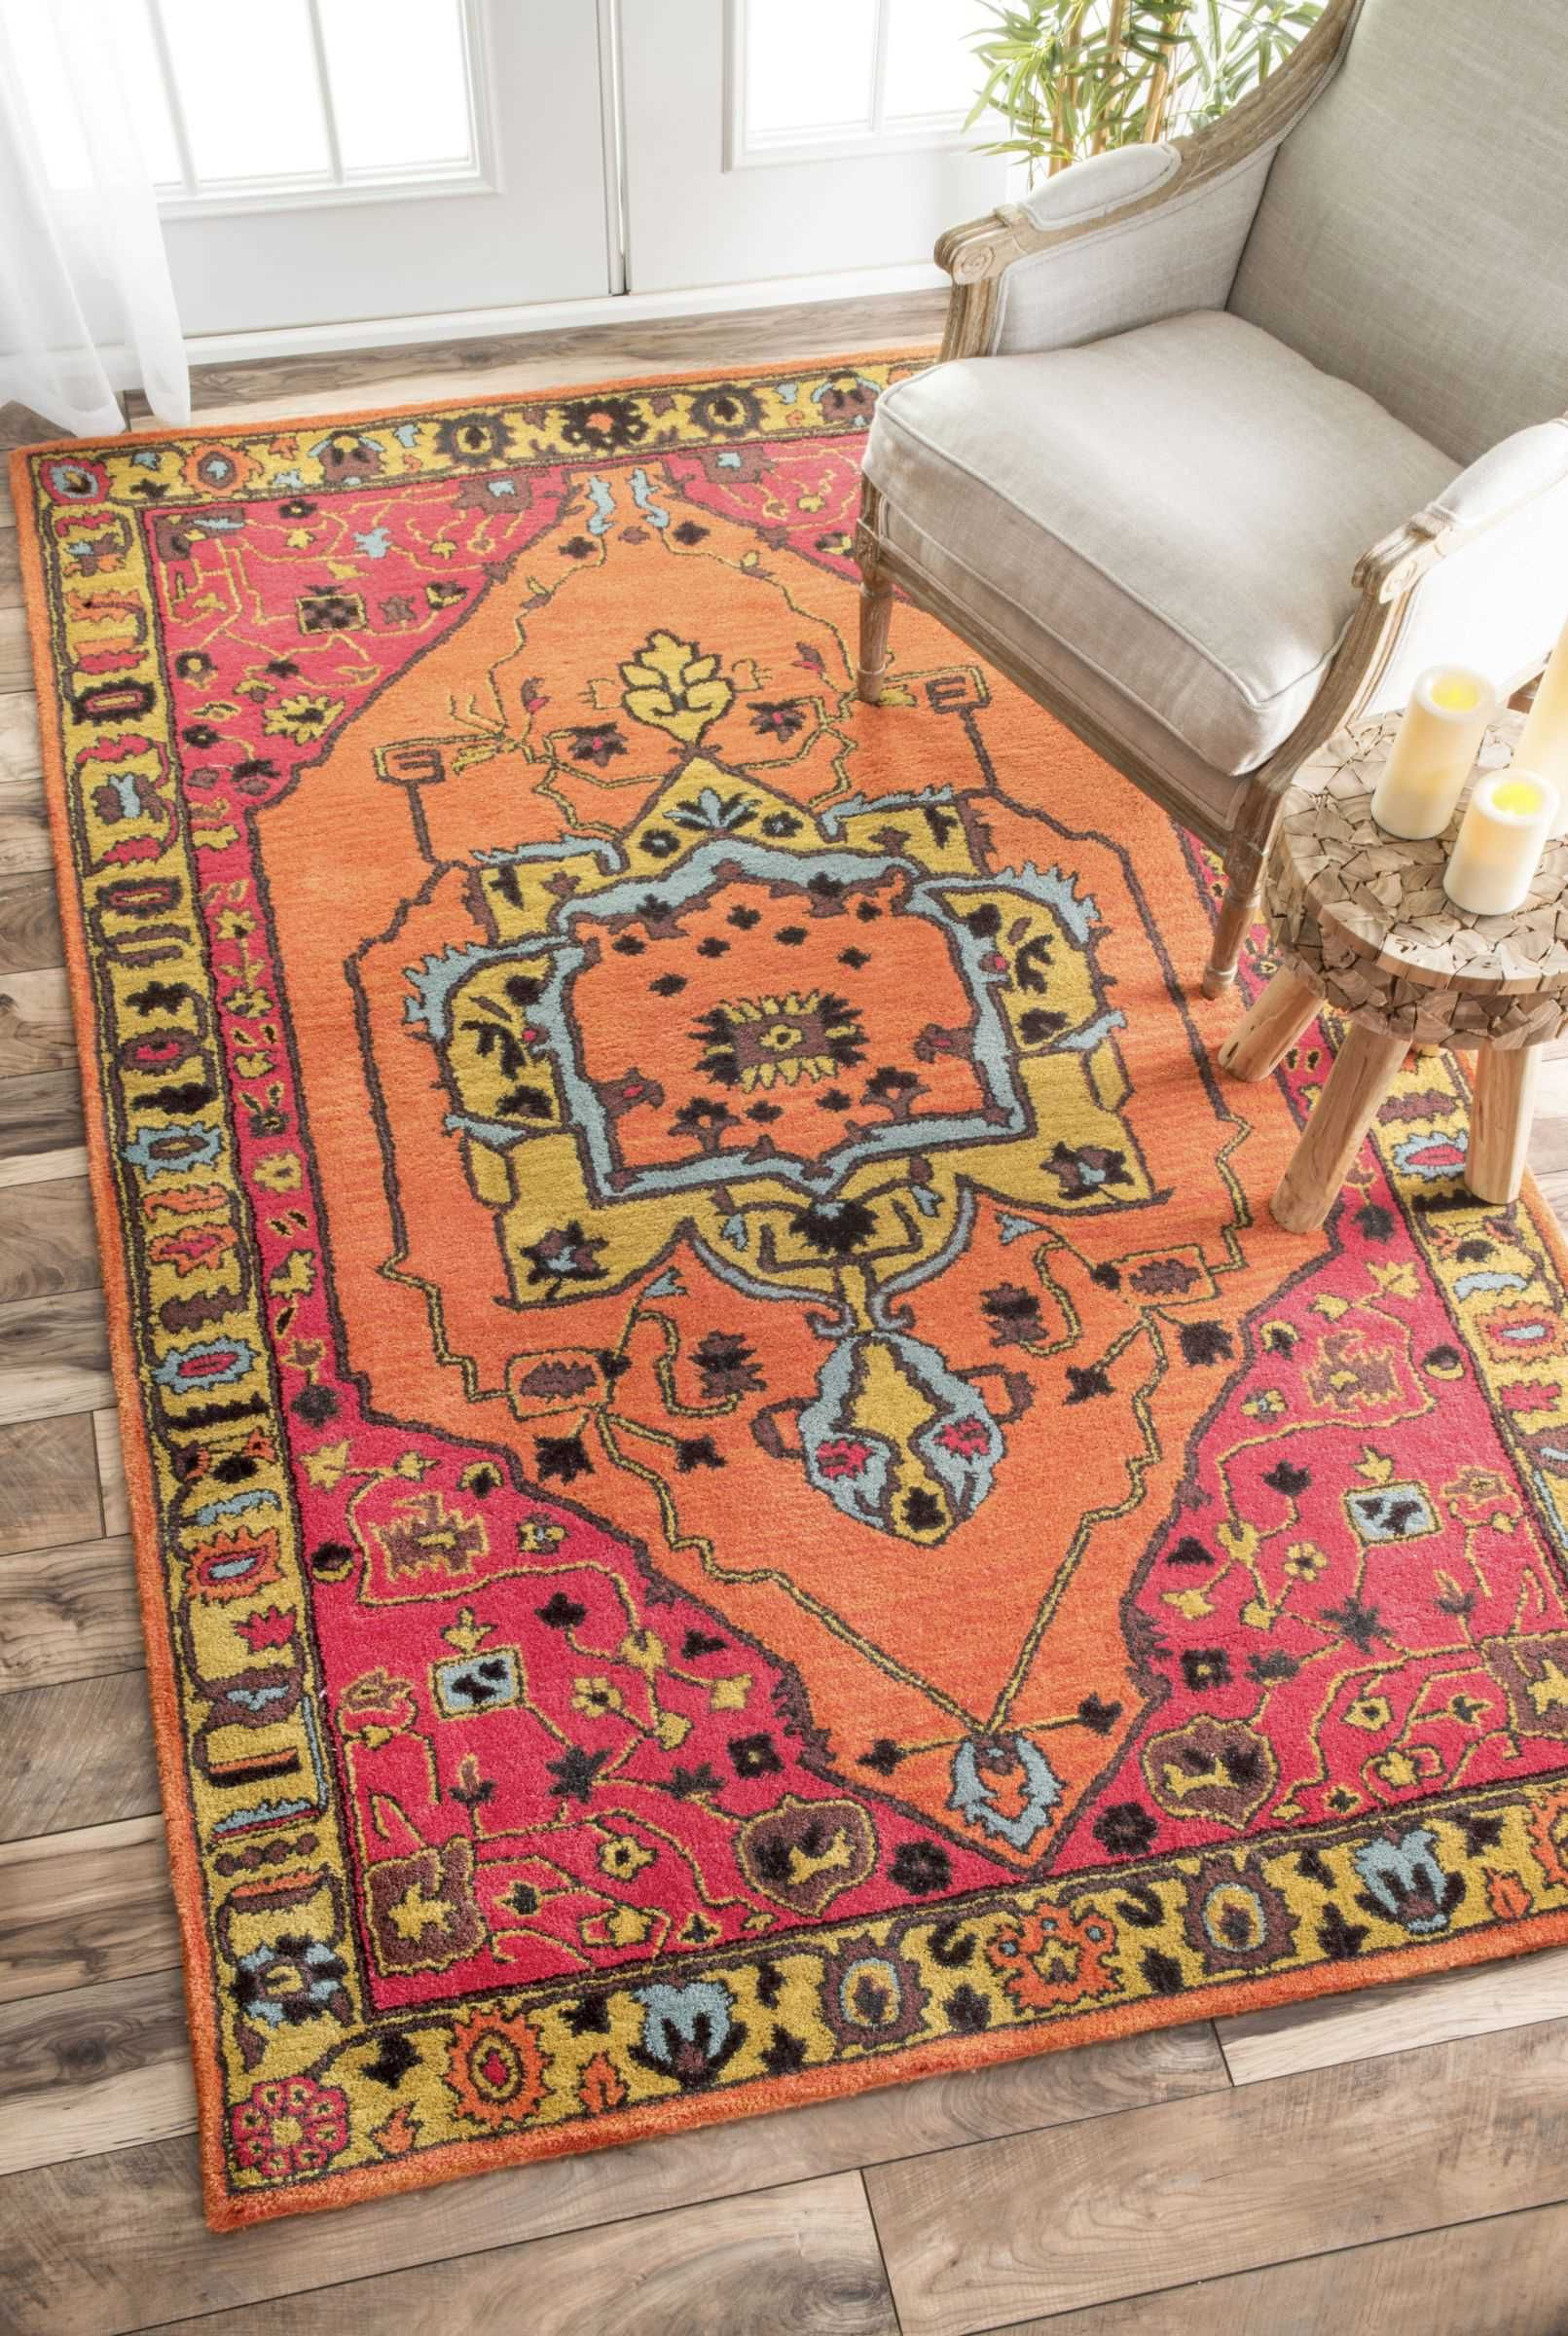 For A Touch Of Warmth And Comfort Select Handmade Rug From Rugs Usa We Have The Perfect Hand Woven Your Living E Check Out Our Selection